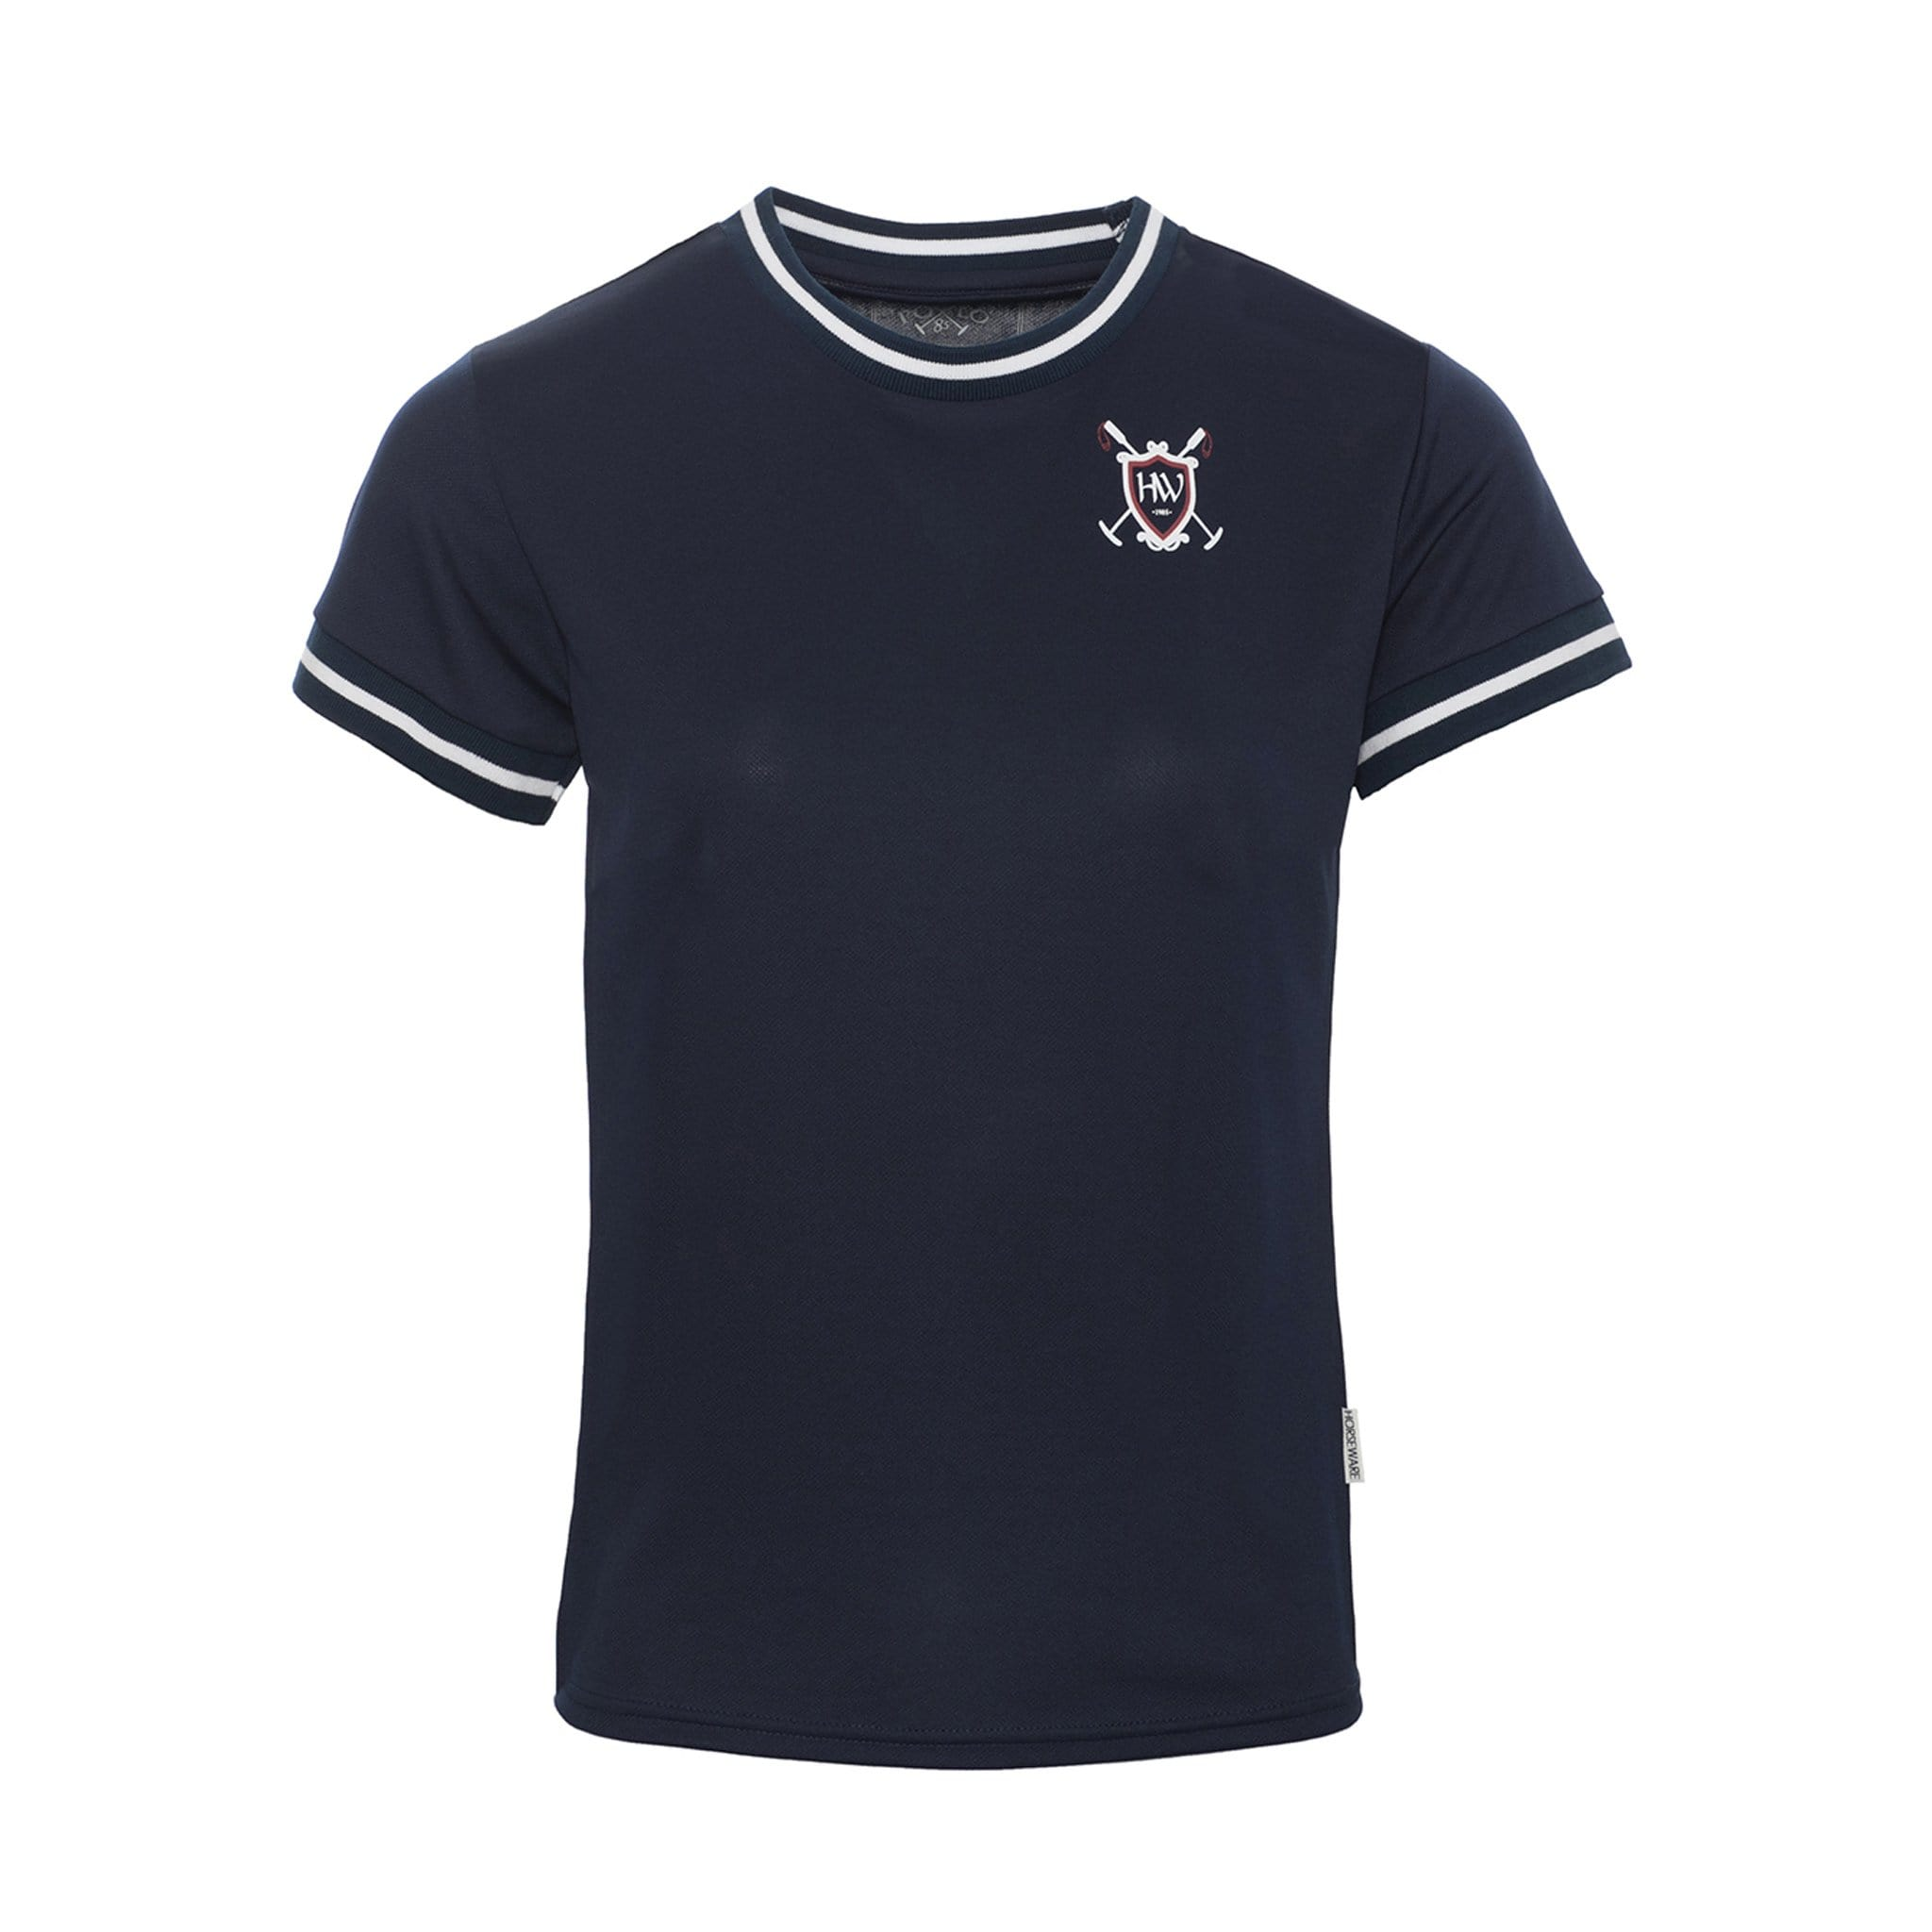 Horseware Technical Tee Shirt Navy Front CJNBLT